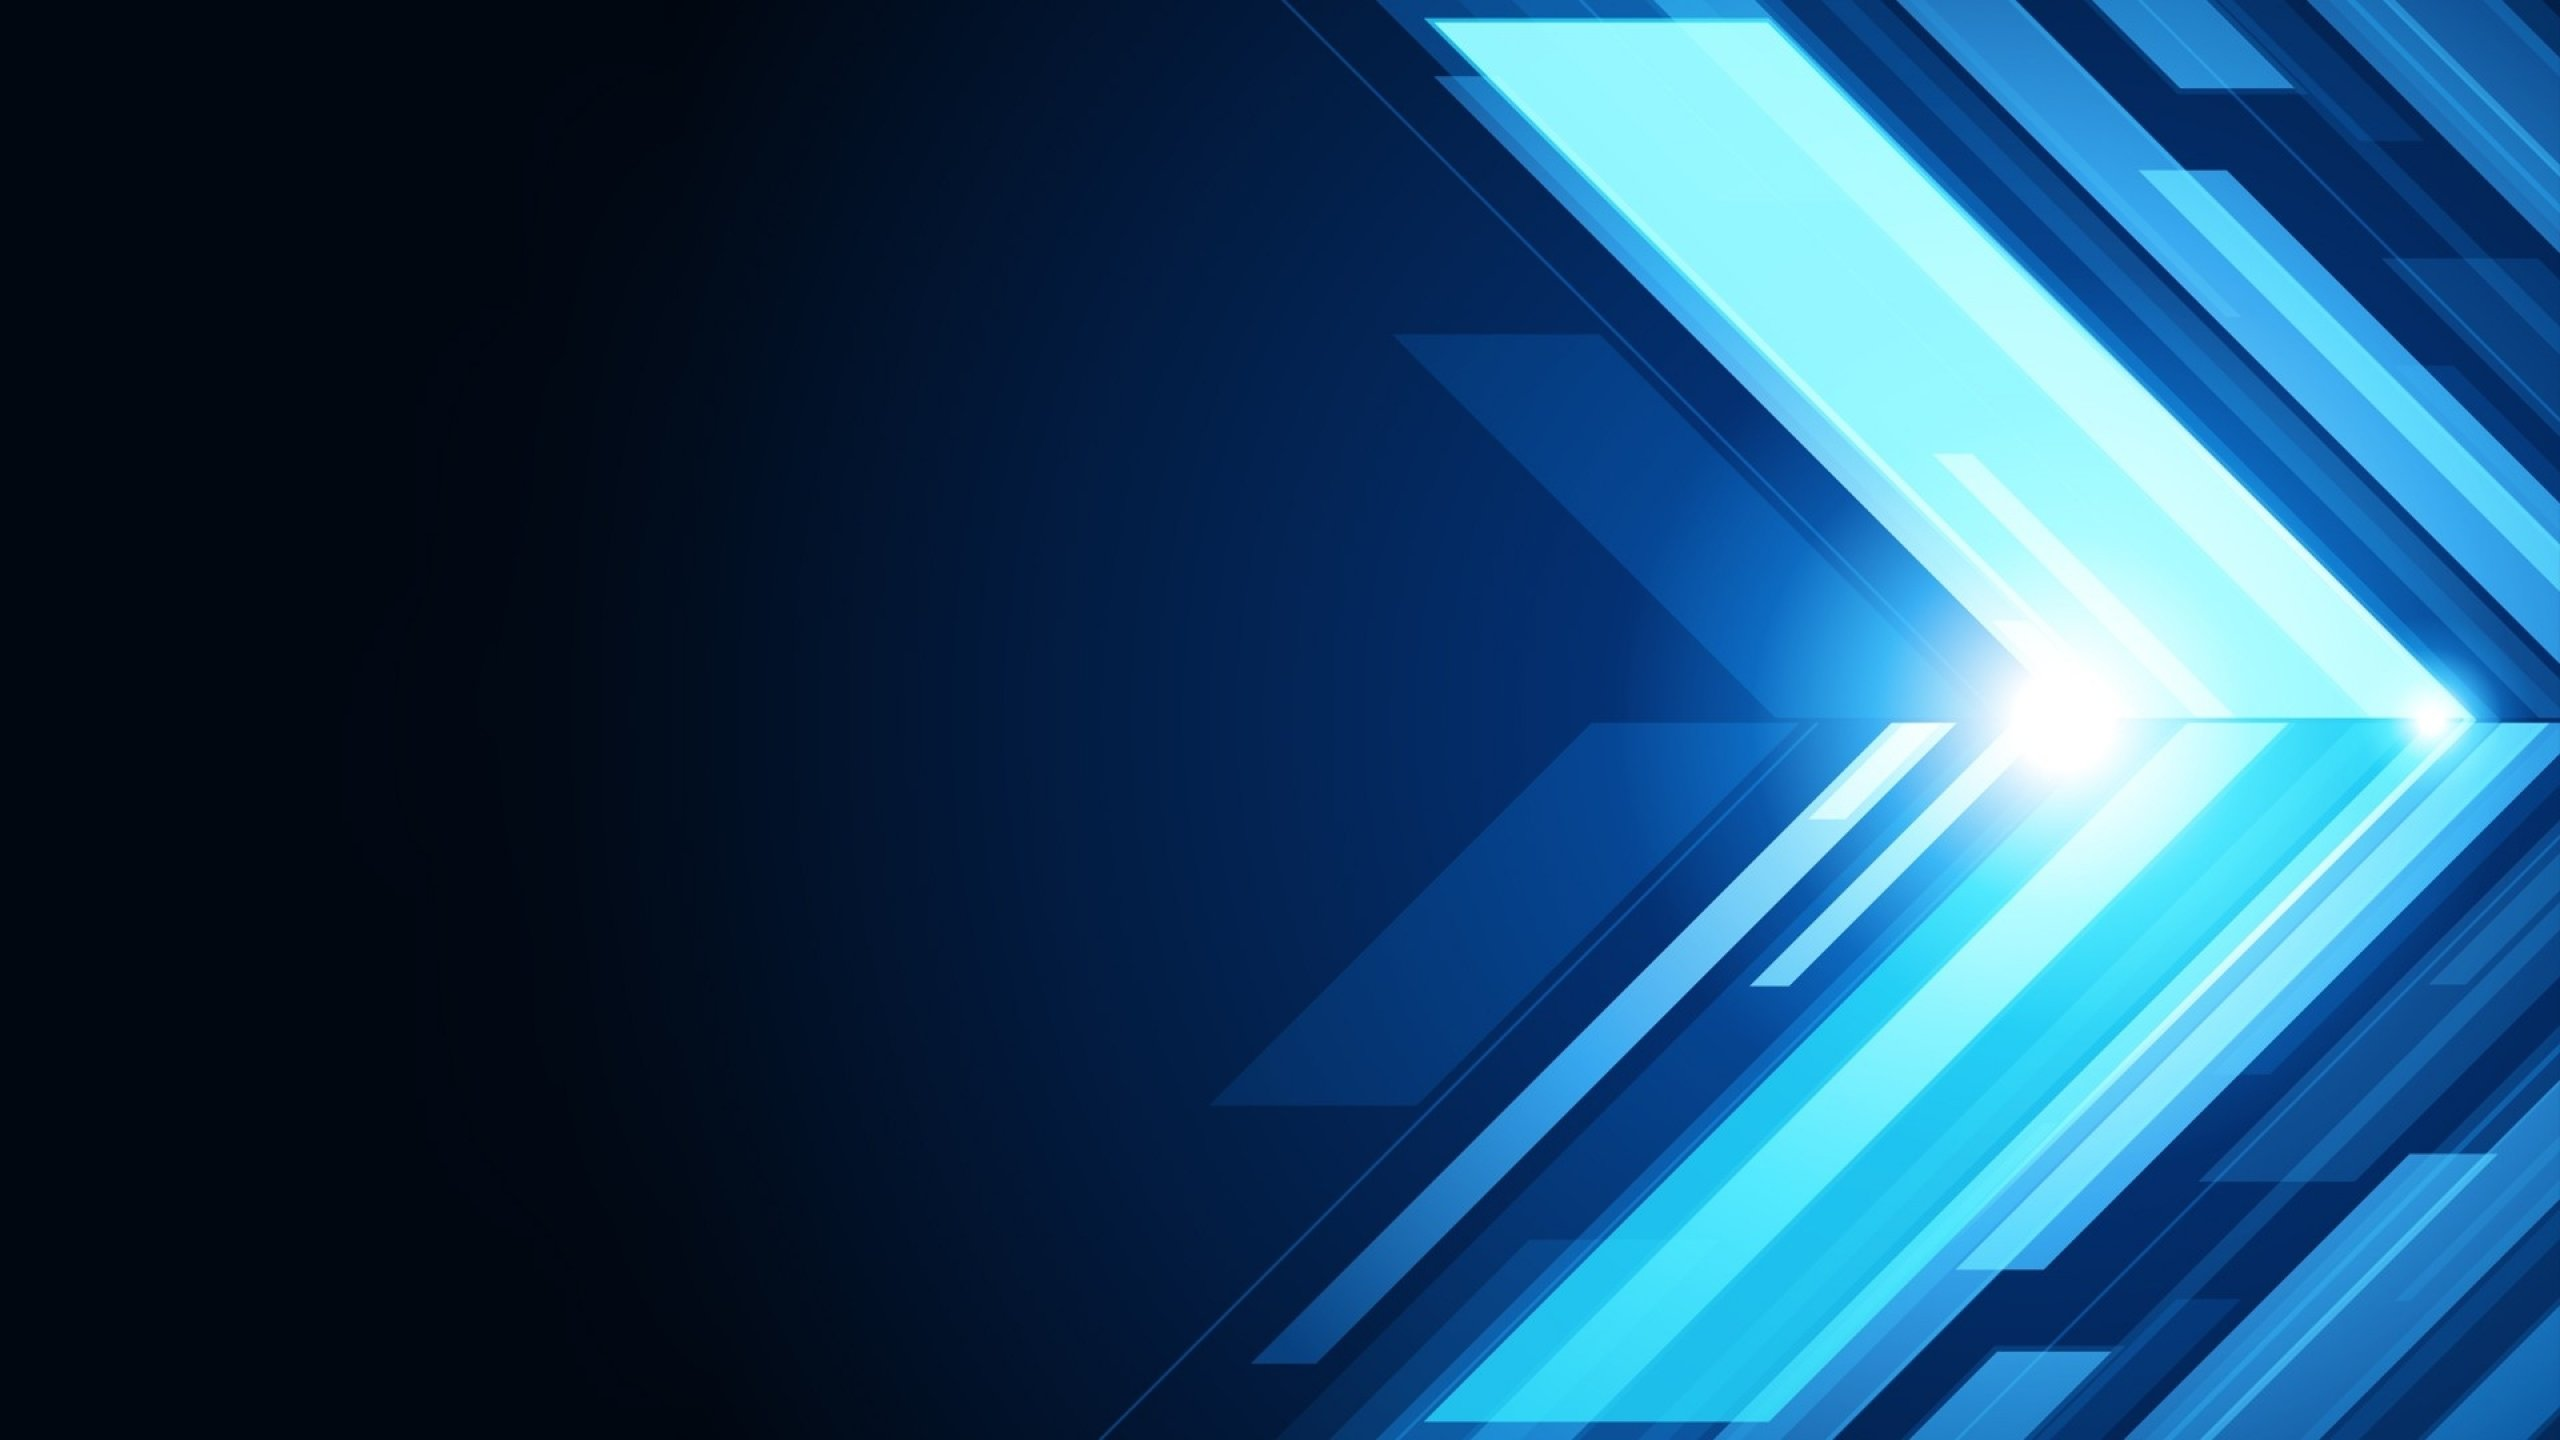 Free Blue high quality wallpaper ID:293818 for hd 2560x1440 computer